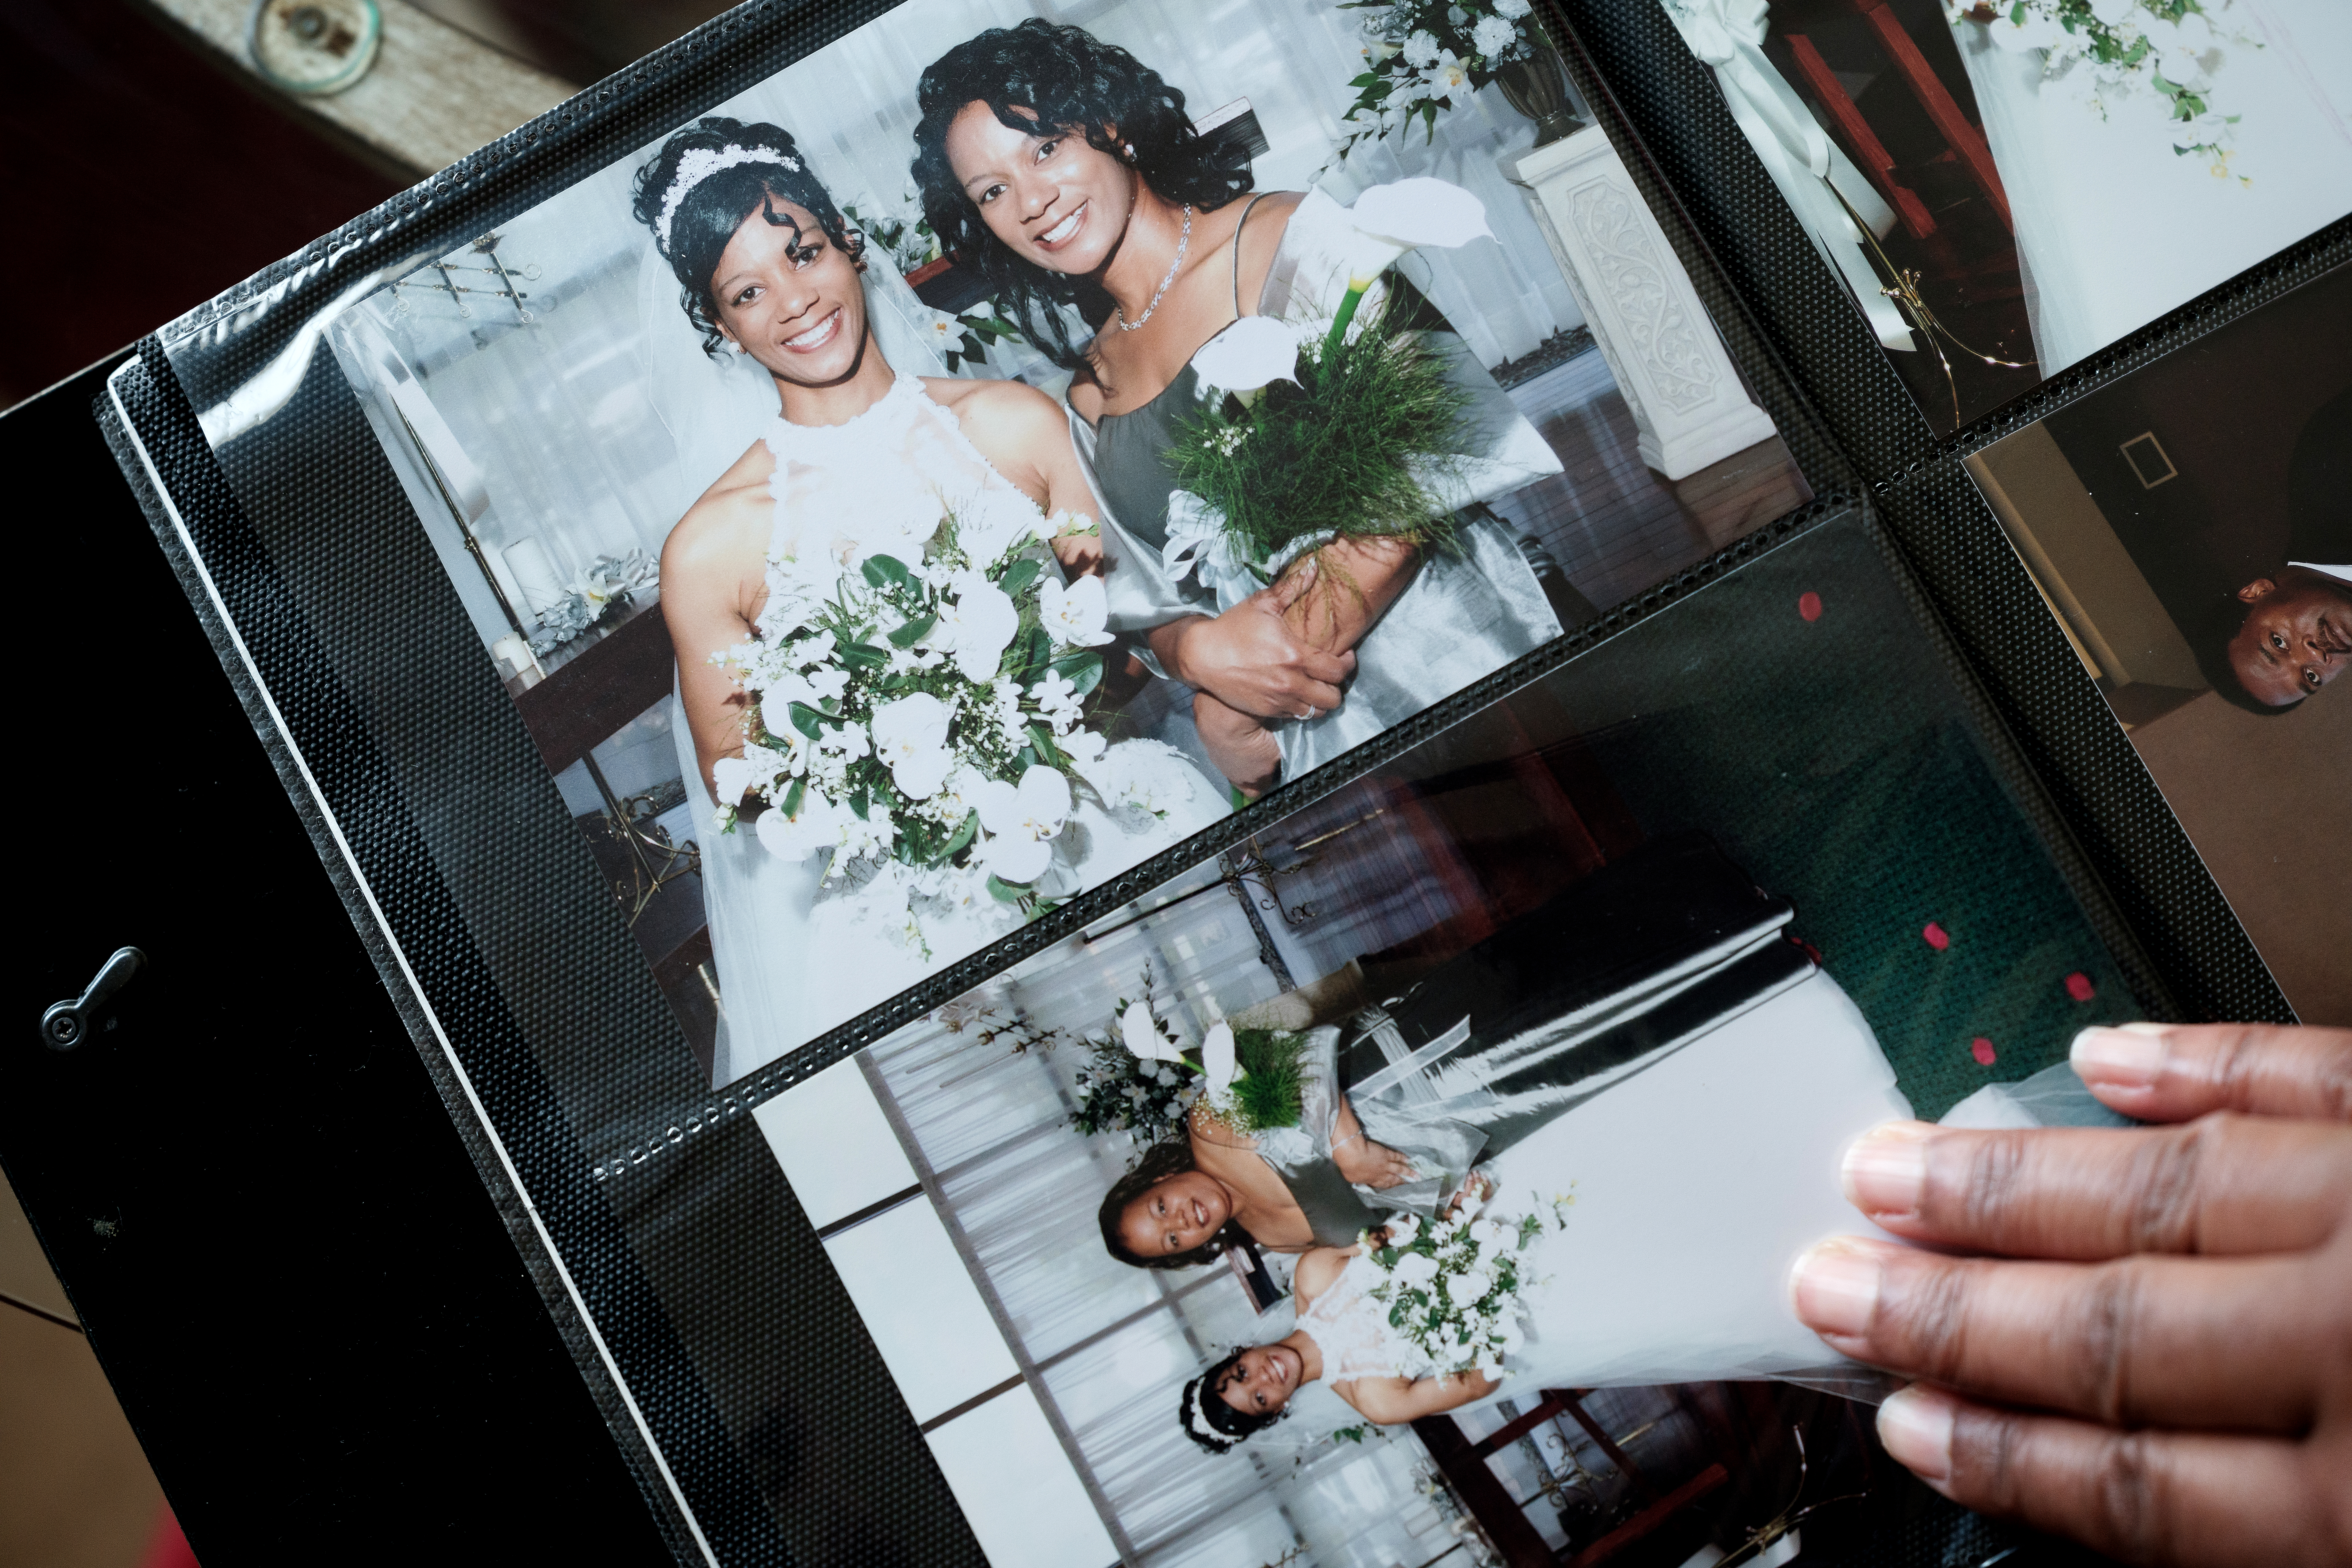 hand looking through photos of Kimberly Ketter and Shaun Rivers at wedding